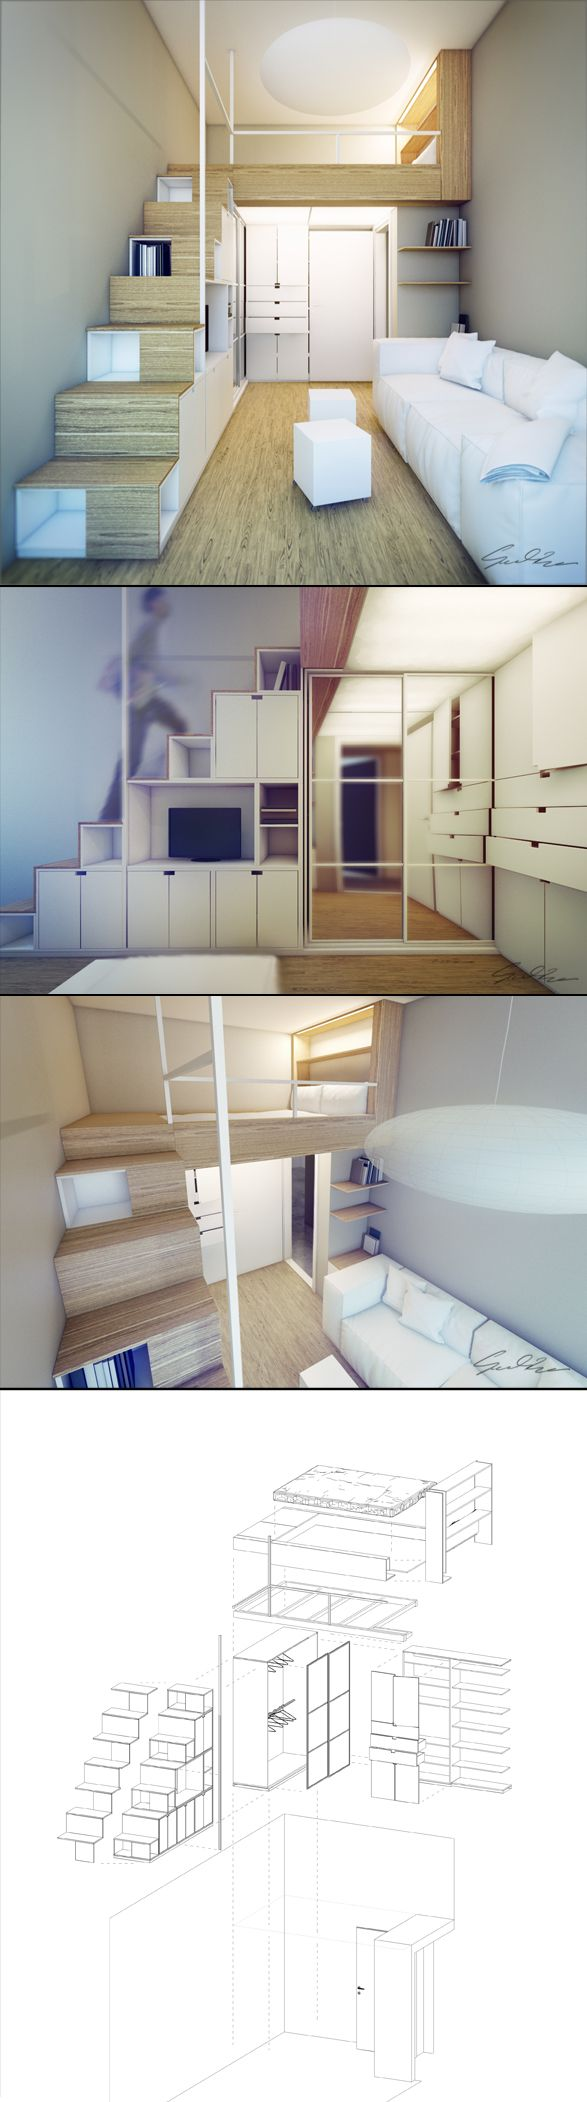 176 best Grenier images on Pinterest | Stairs, Tiny houses and ...